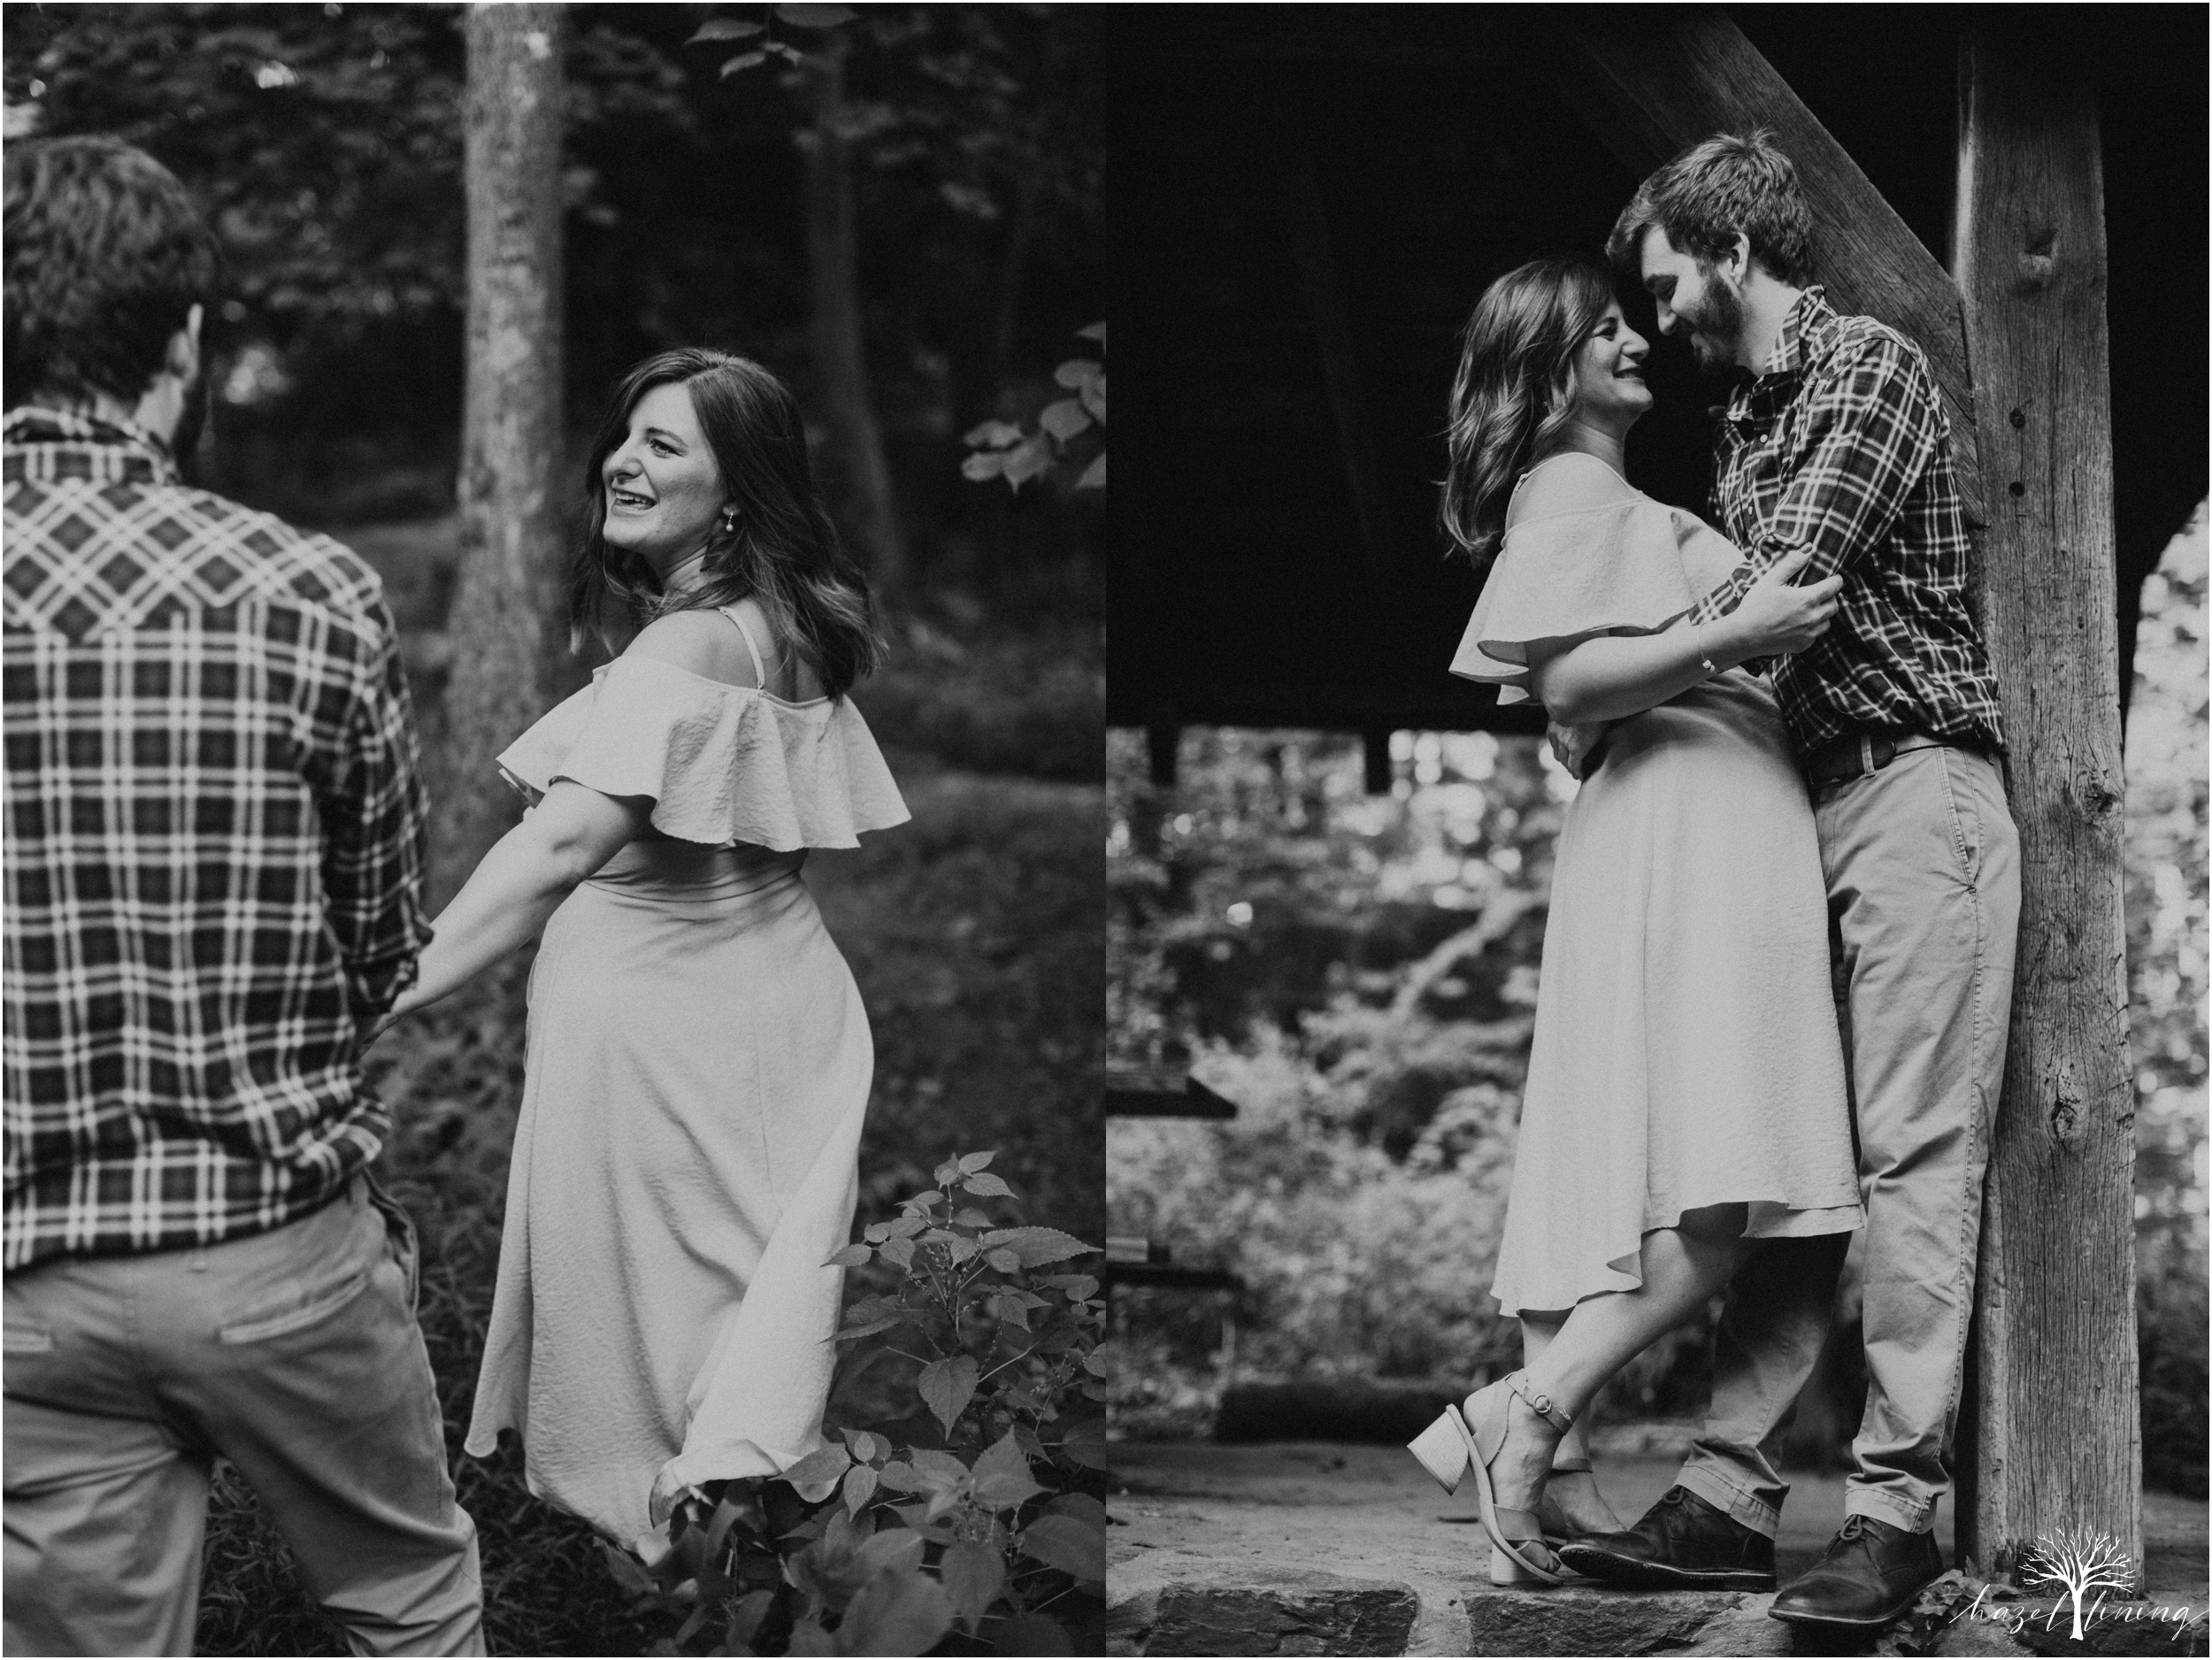 paige-kochey-chris-graham-valley-green-wissahickon-park-philadelphia-summer-engagement-session-hazel-lining-photography-destination-elopement-wedding-engagement-photography_0013.jpg